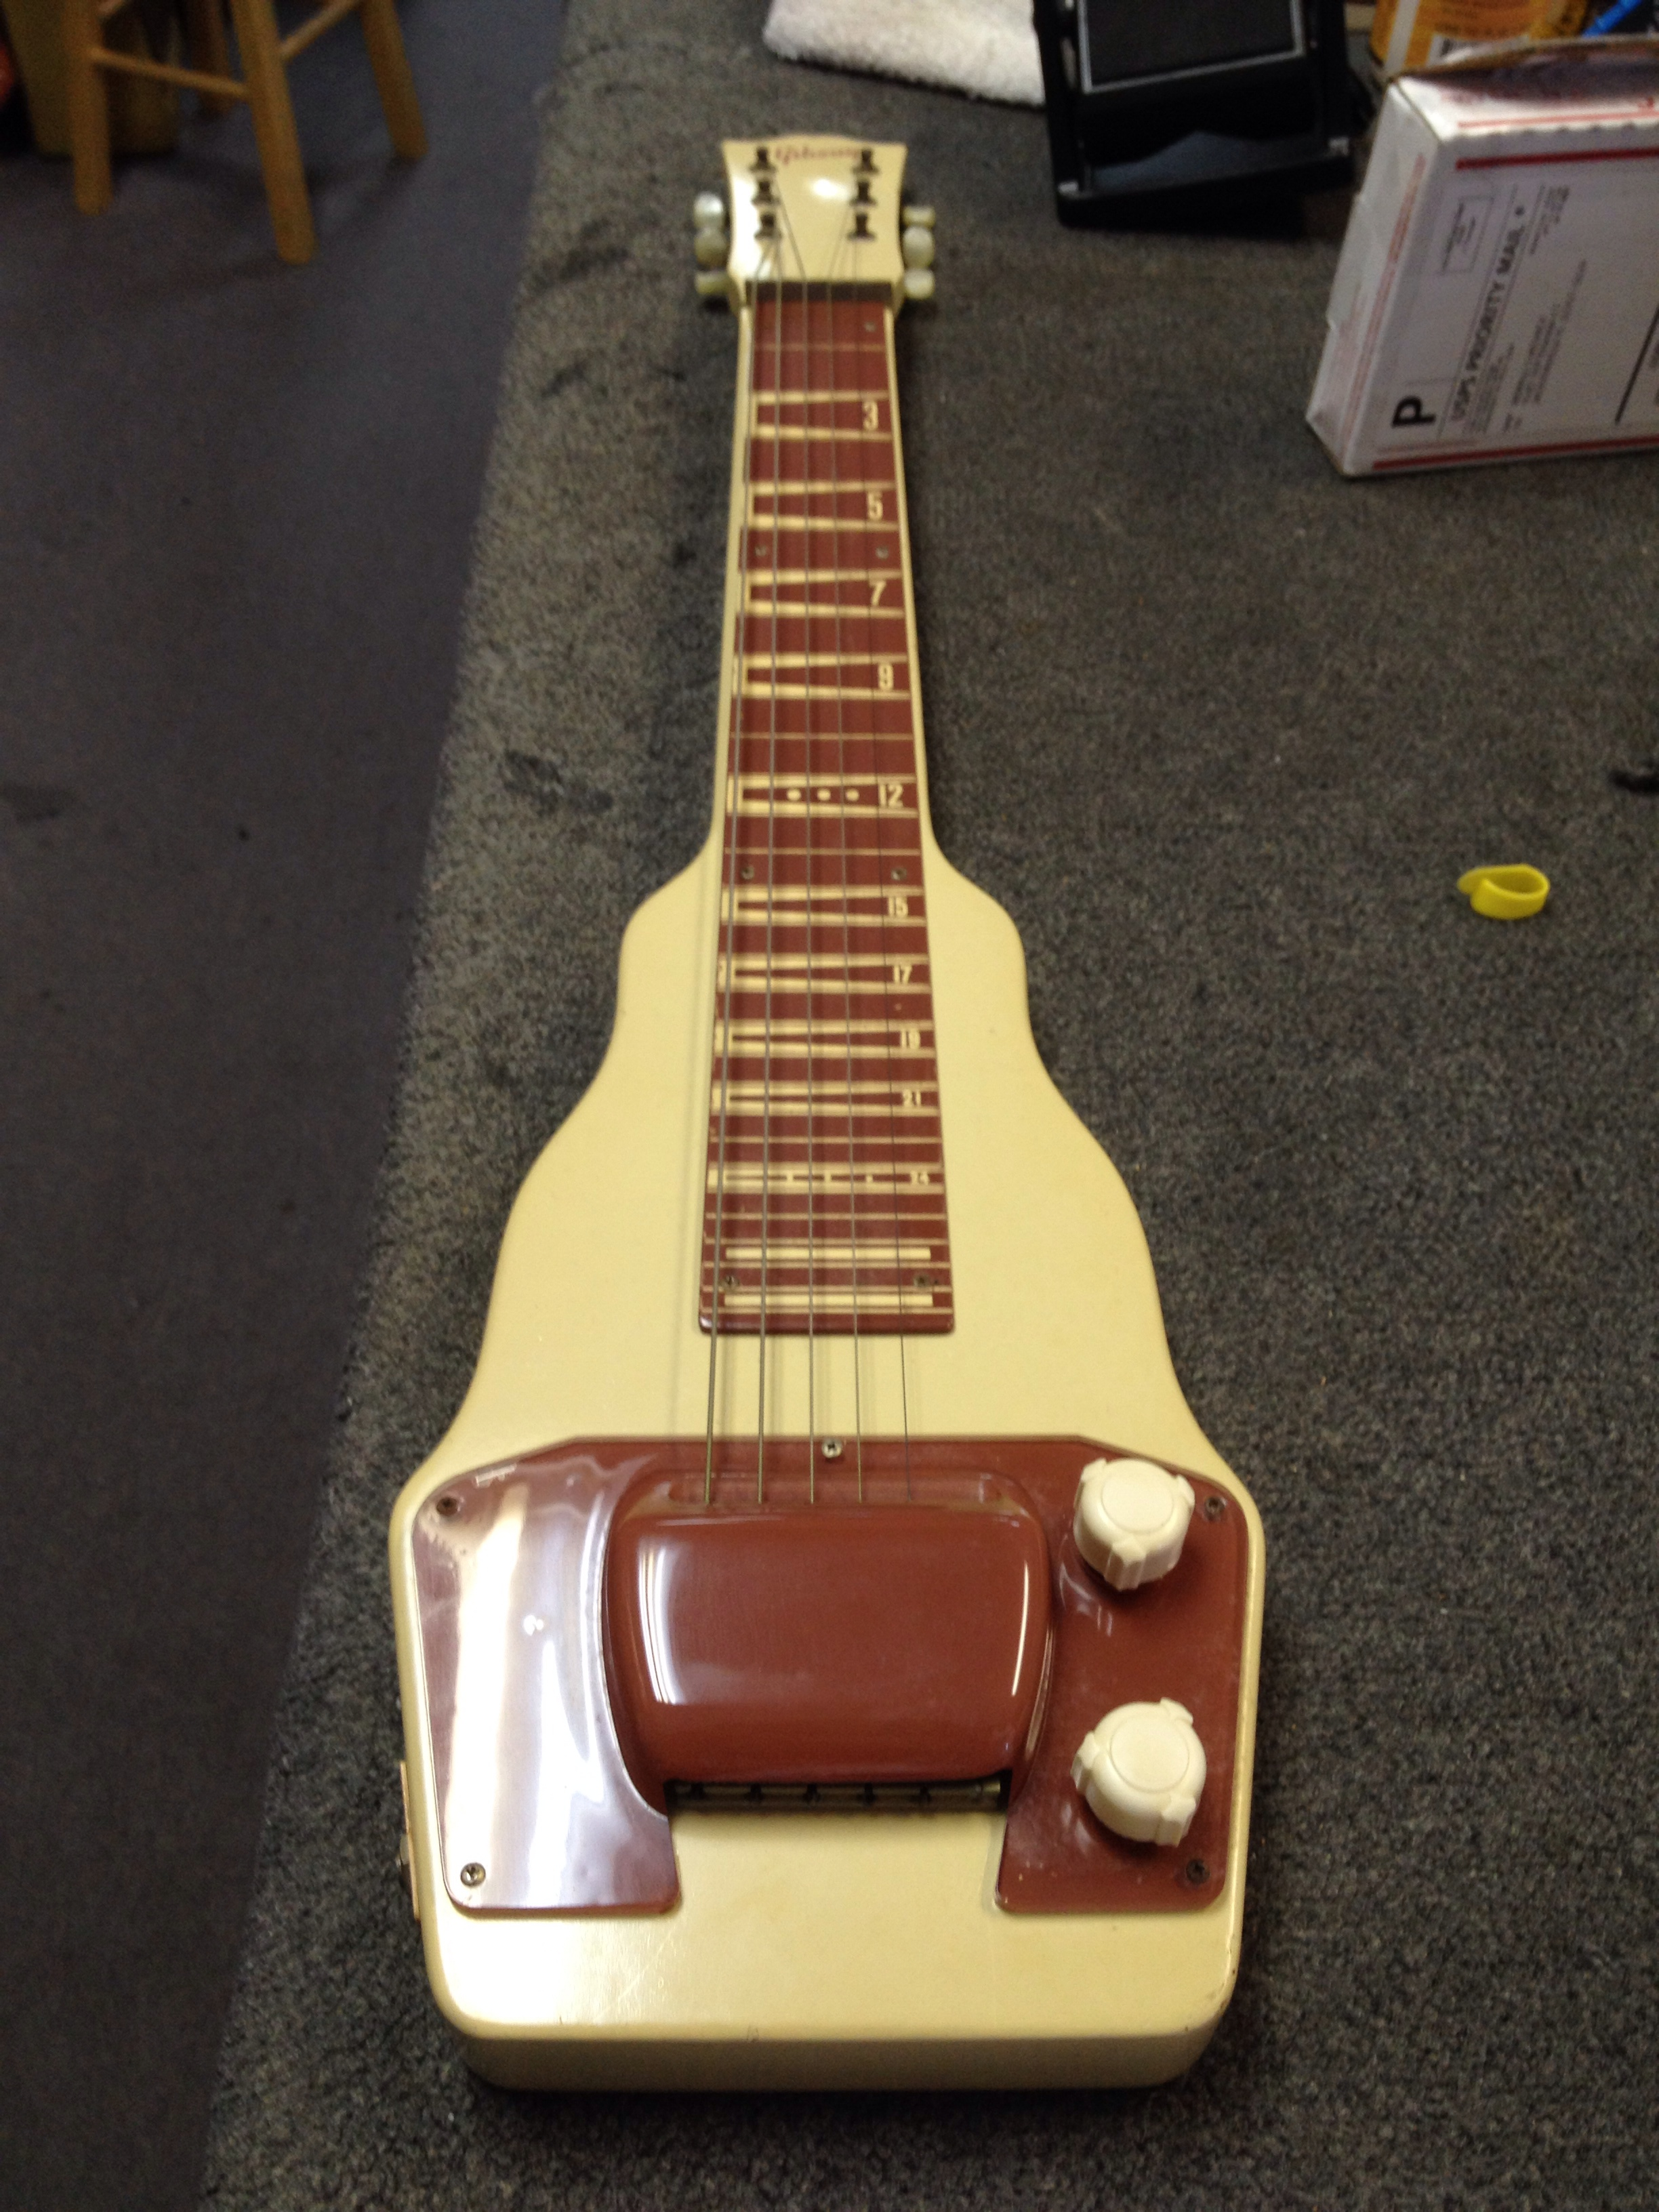 Yesterday we appraised this old Gibson BR-9 lap steel and amp